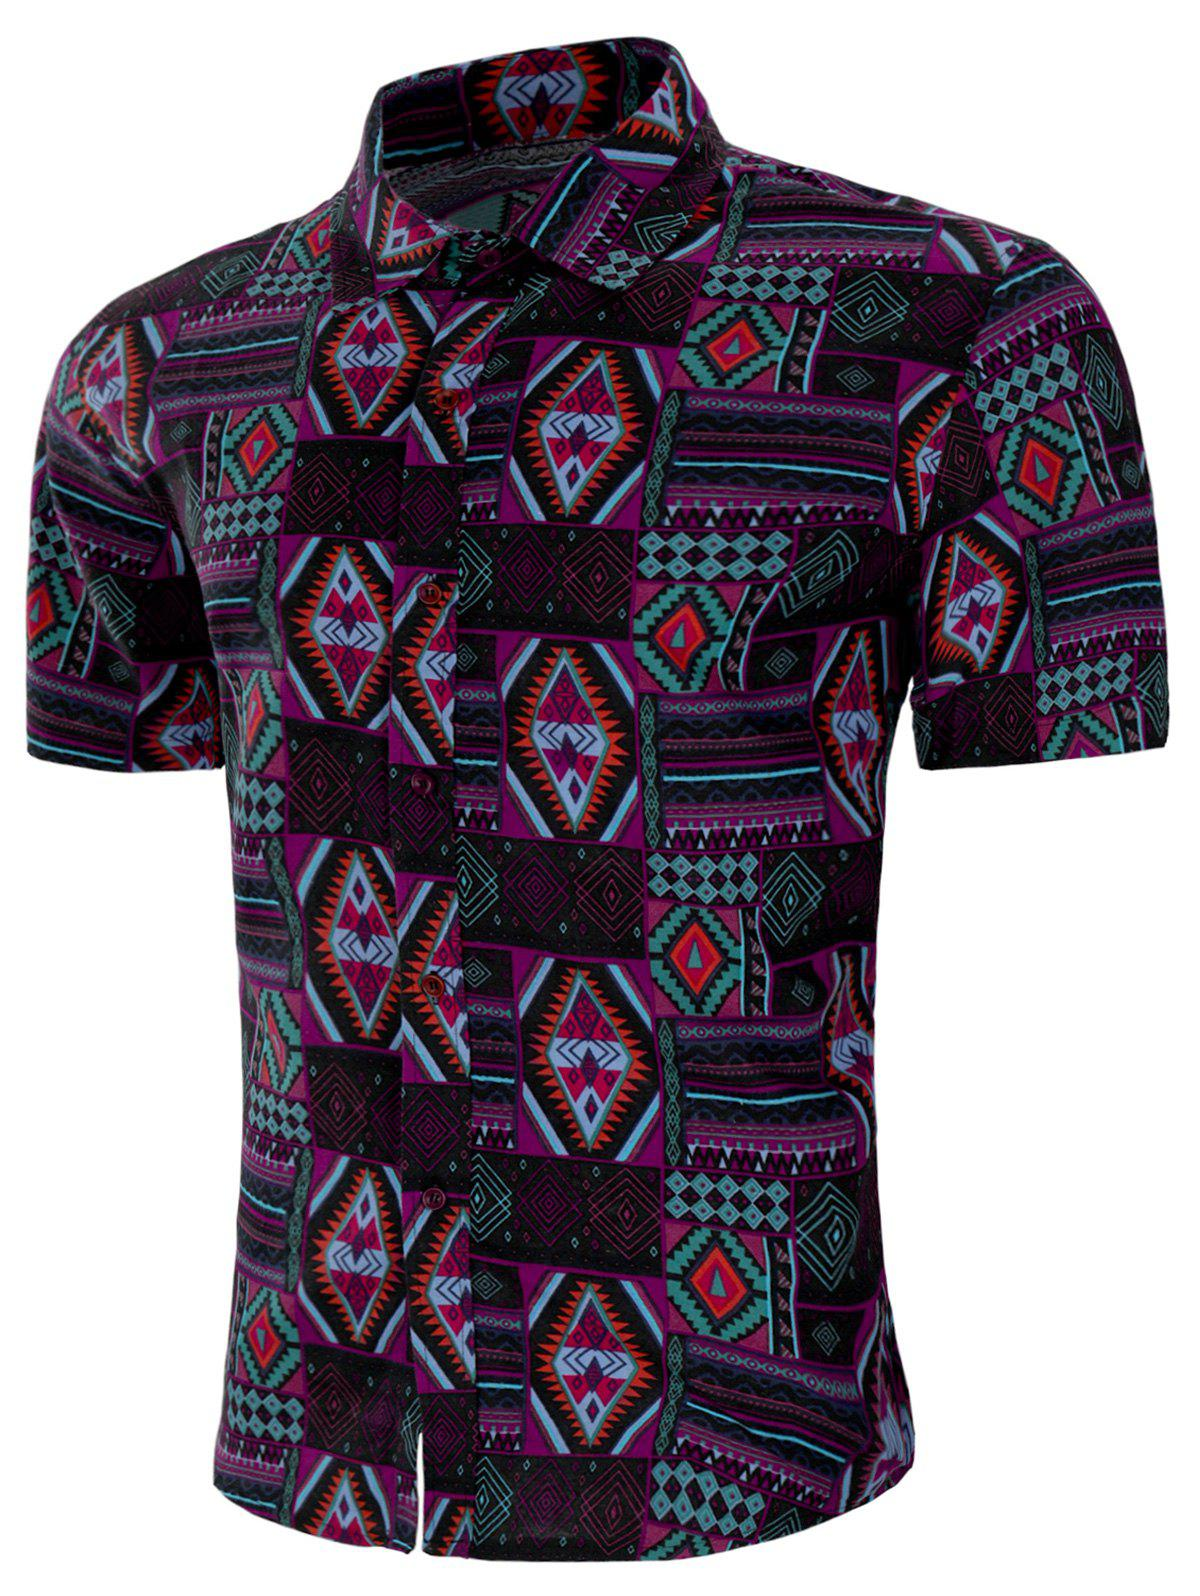 Turn-down Collar All Over Geometric Print Shirt - multicolor L